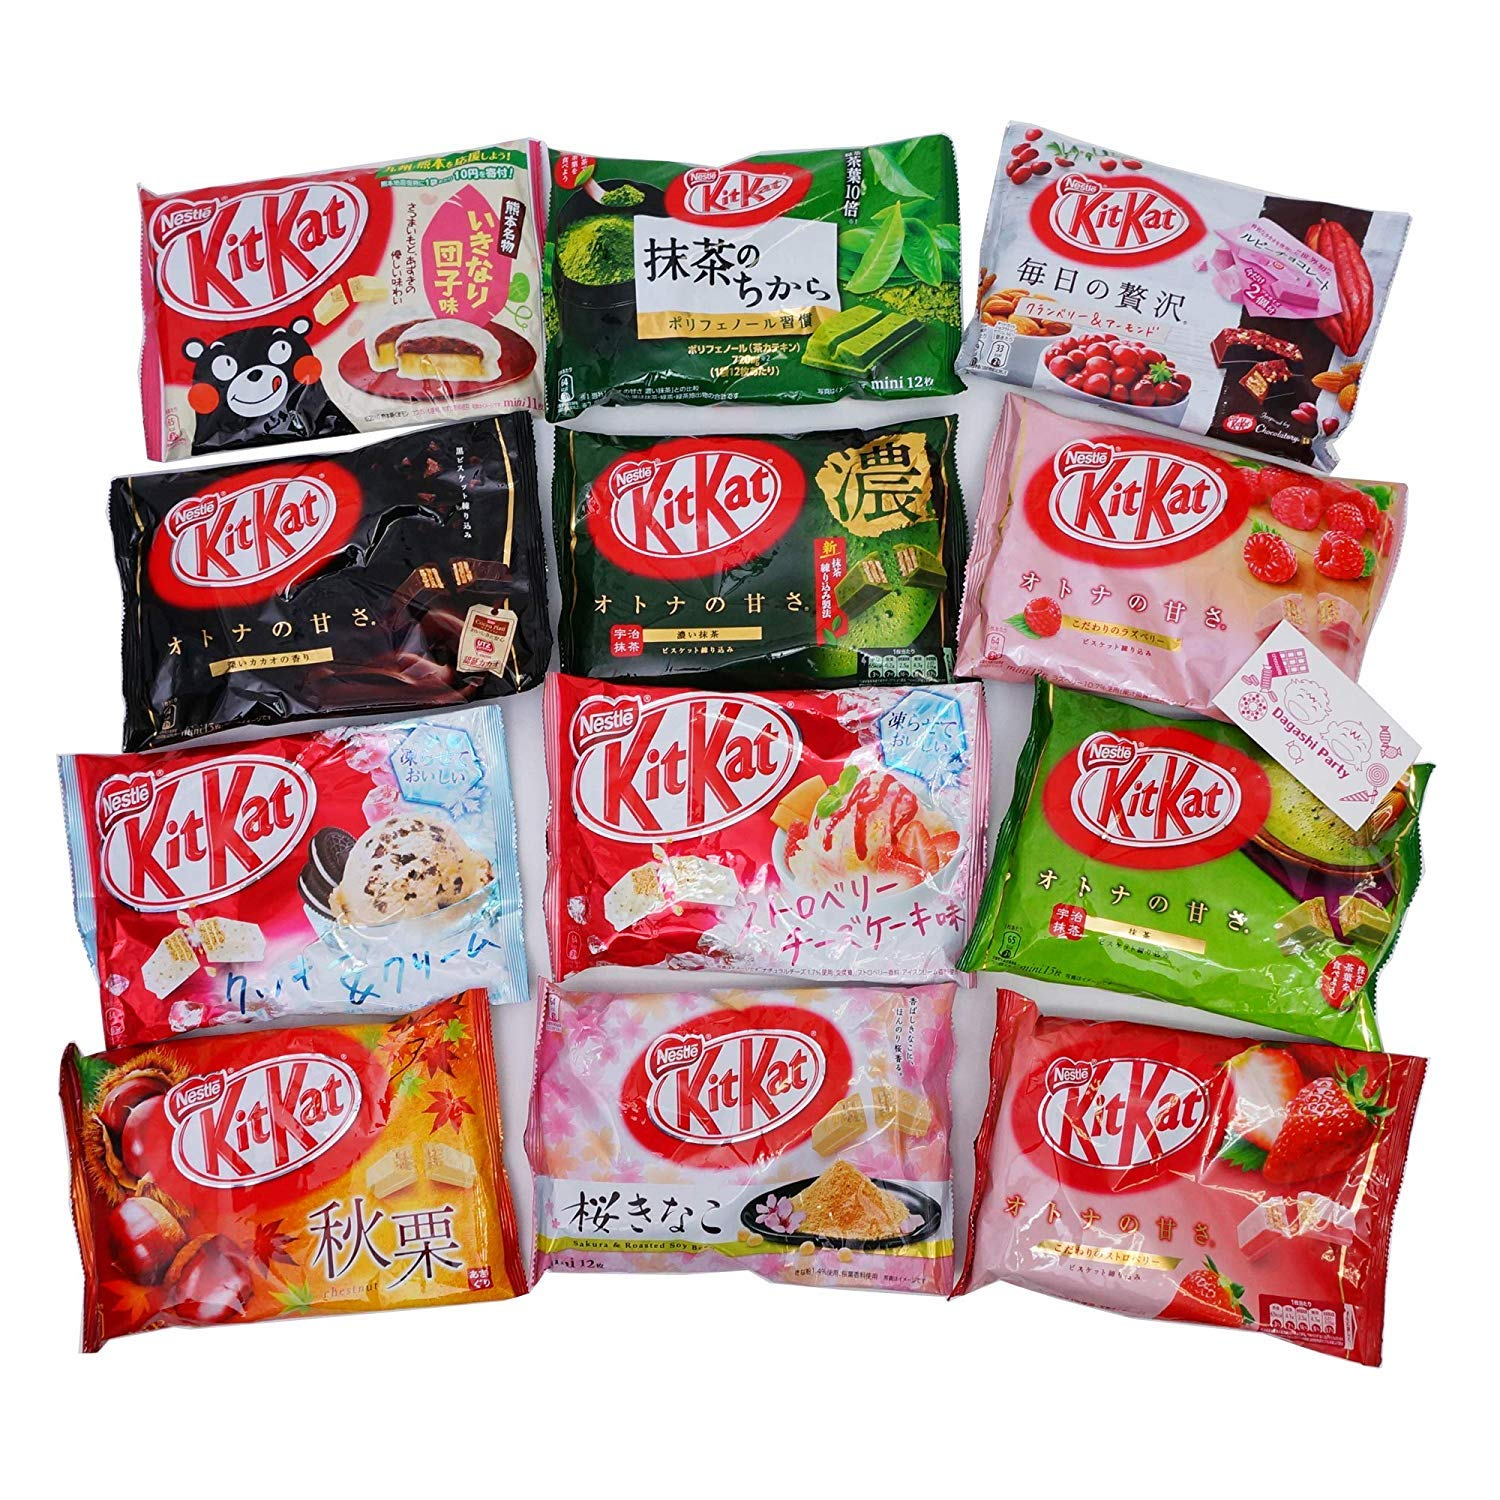 Nestle Japan Kit Kat candy bars Comparison 8 Bags Random Set Variety Assortment 8 Bags Japanese chocolate by Nestle Japan